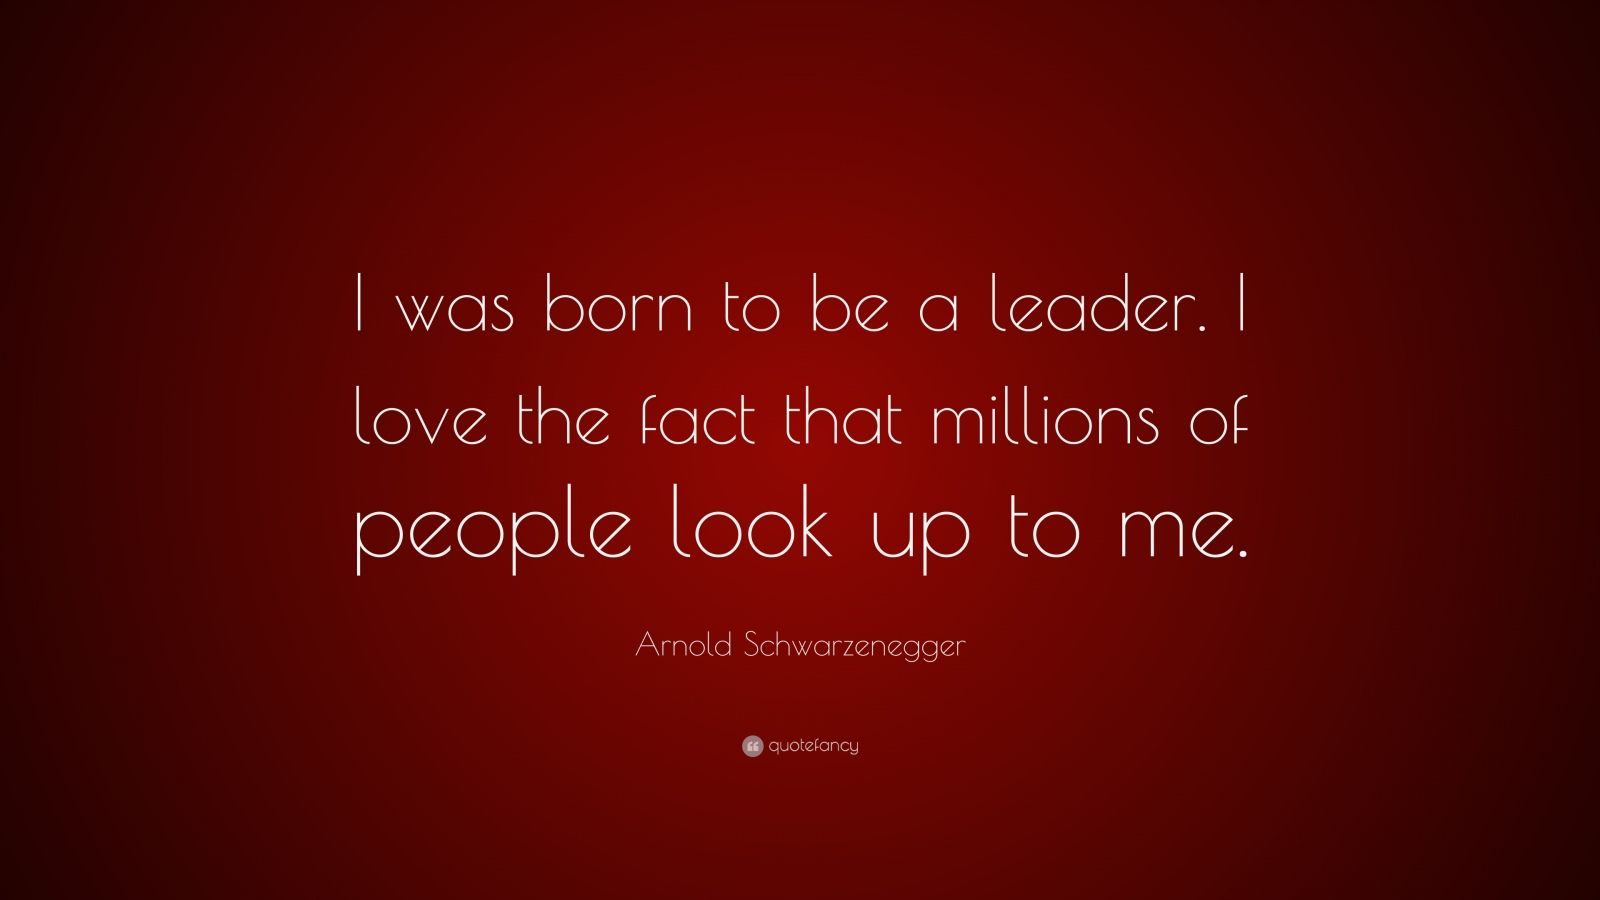 """Arnold Schwarzenegger Quote: """"I was born to be a leader. I love the fact that millions of people look up to me."""""""